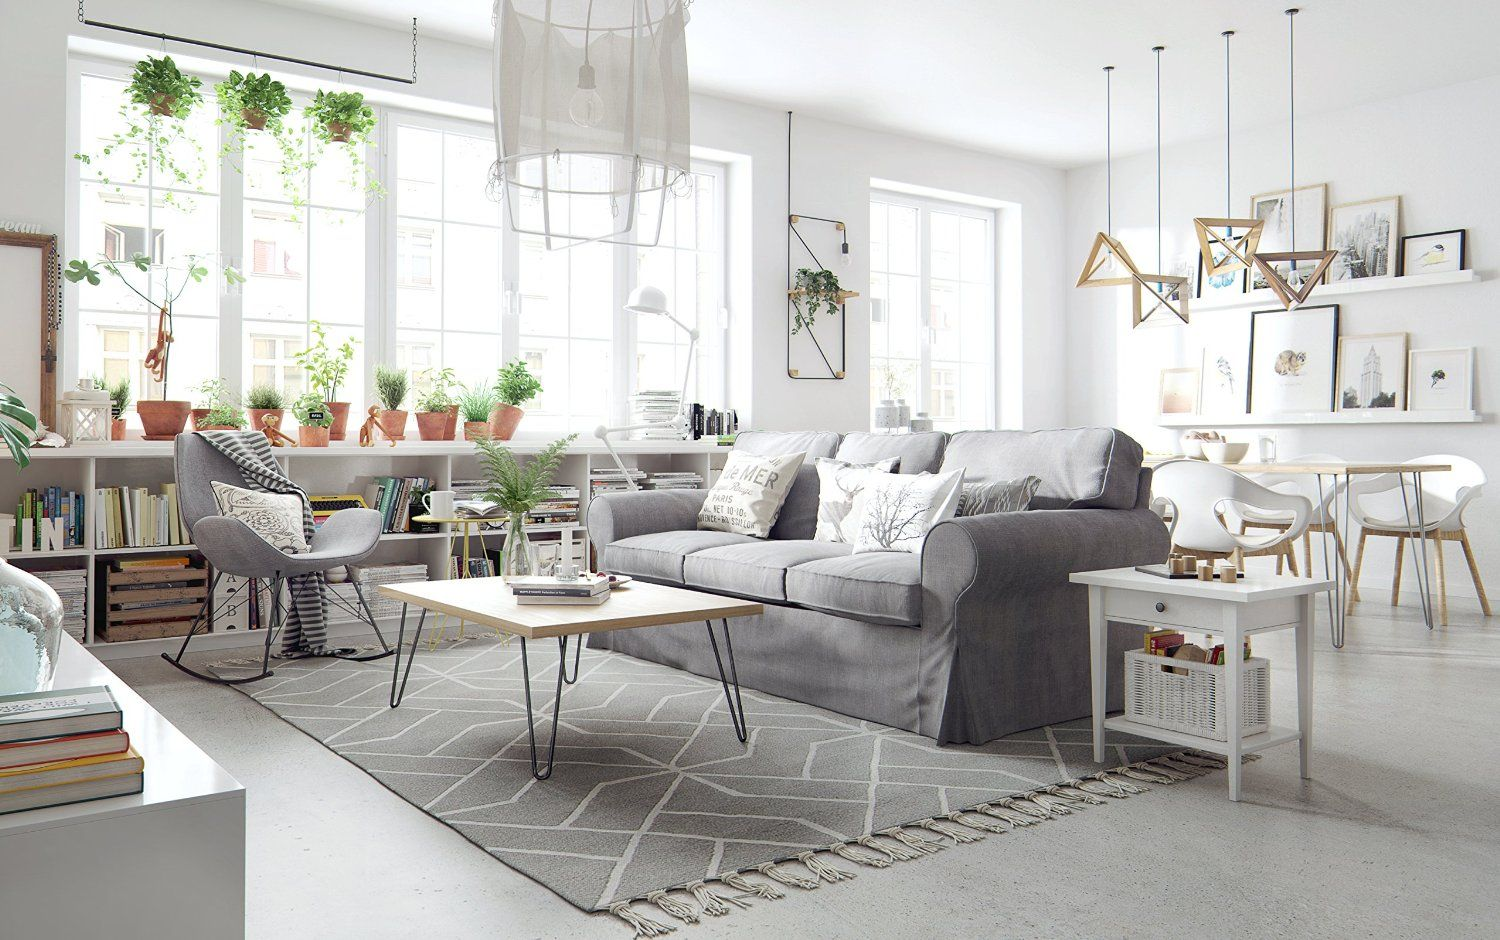 Beautiful home interiors pin by eva melia on home  living room  pinterest  living rooms